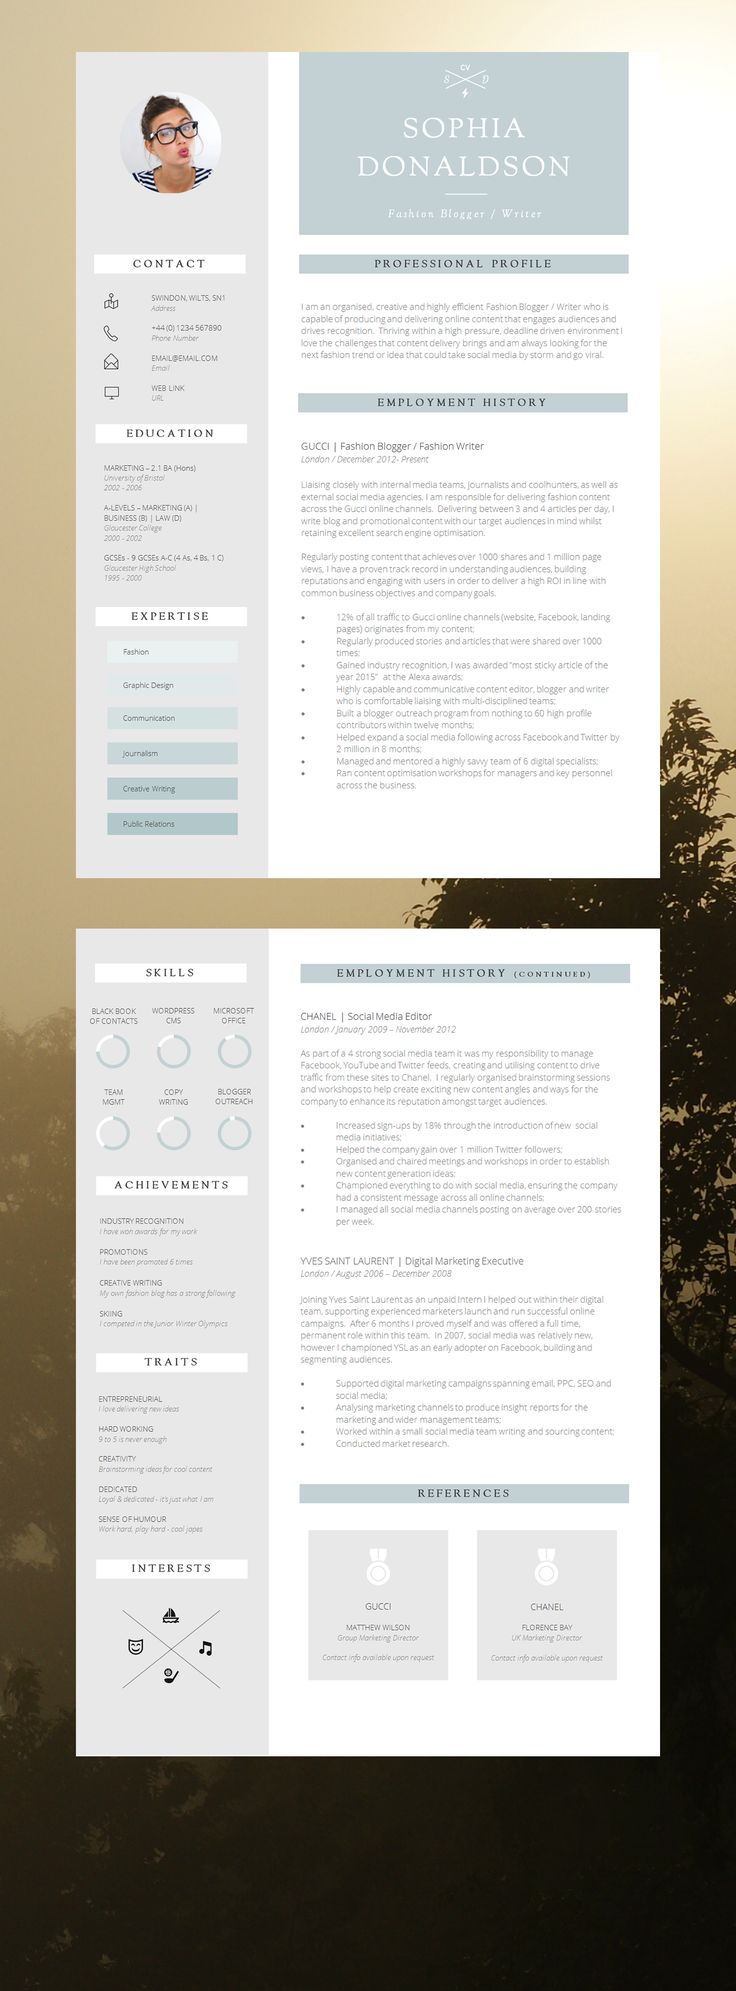 best ideas about professional resume template cv template modern cv design don t underestimate the power of a professional